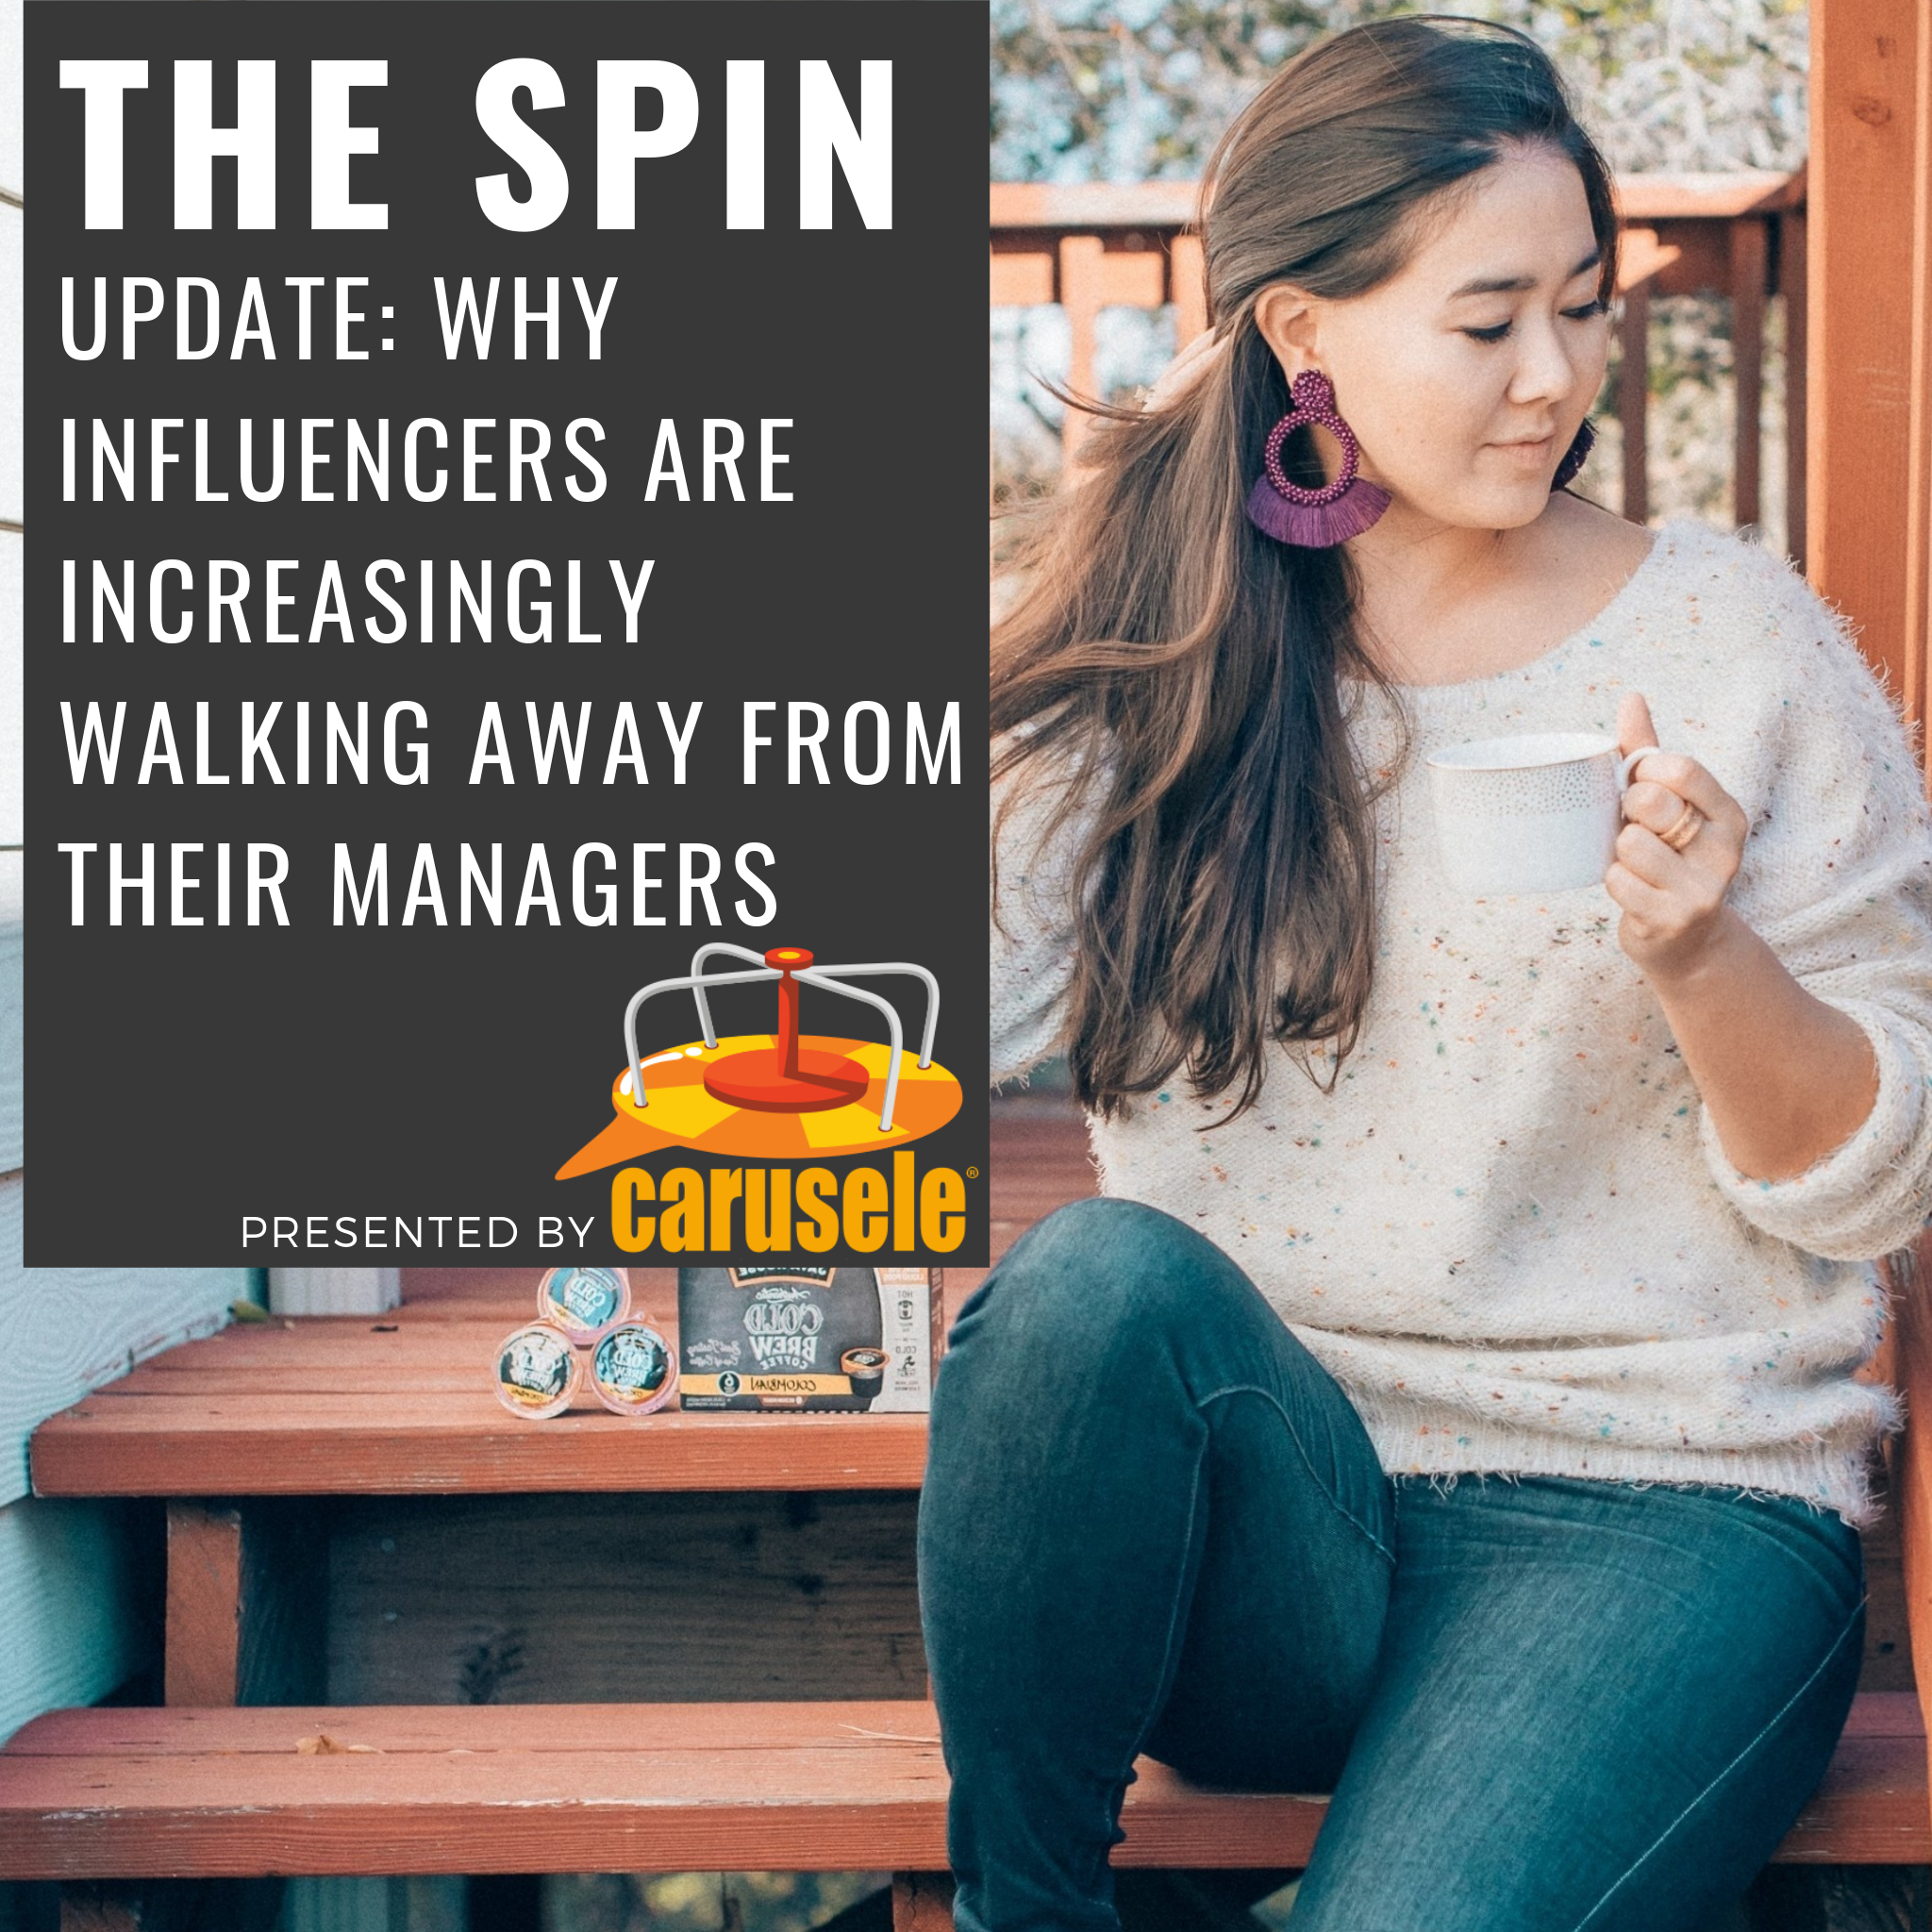 The Spin 93 Influencers Firing Managers